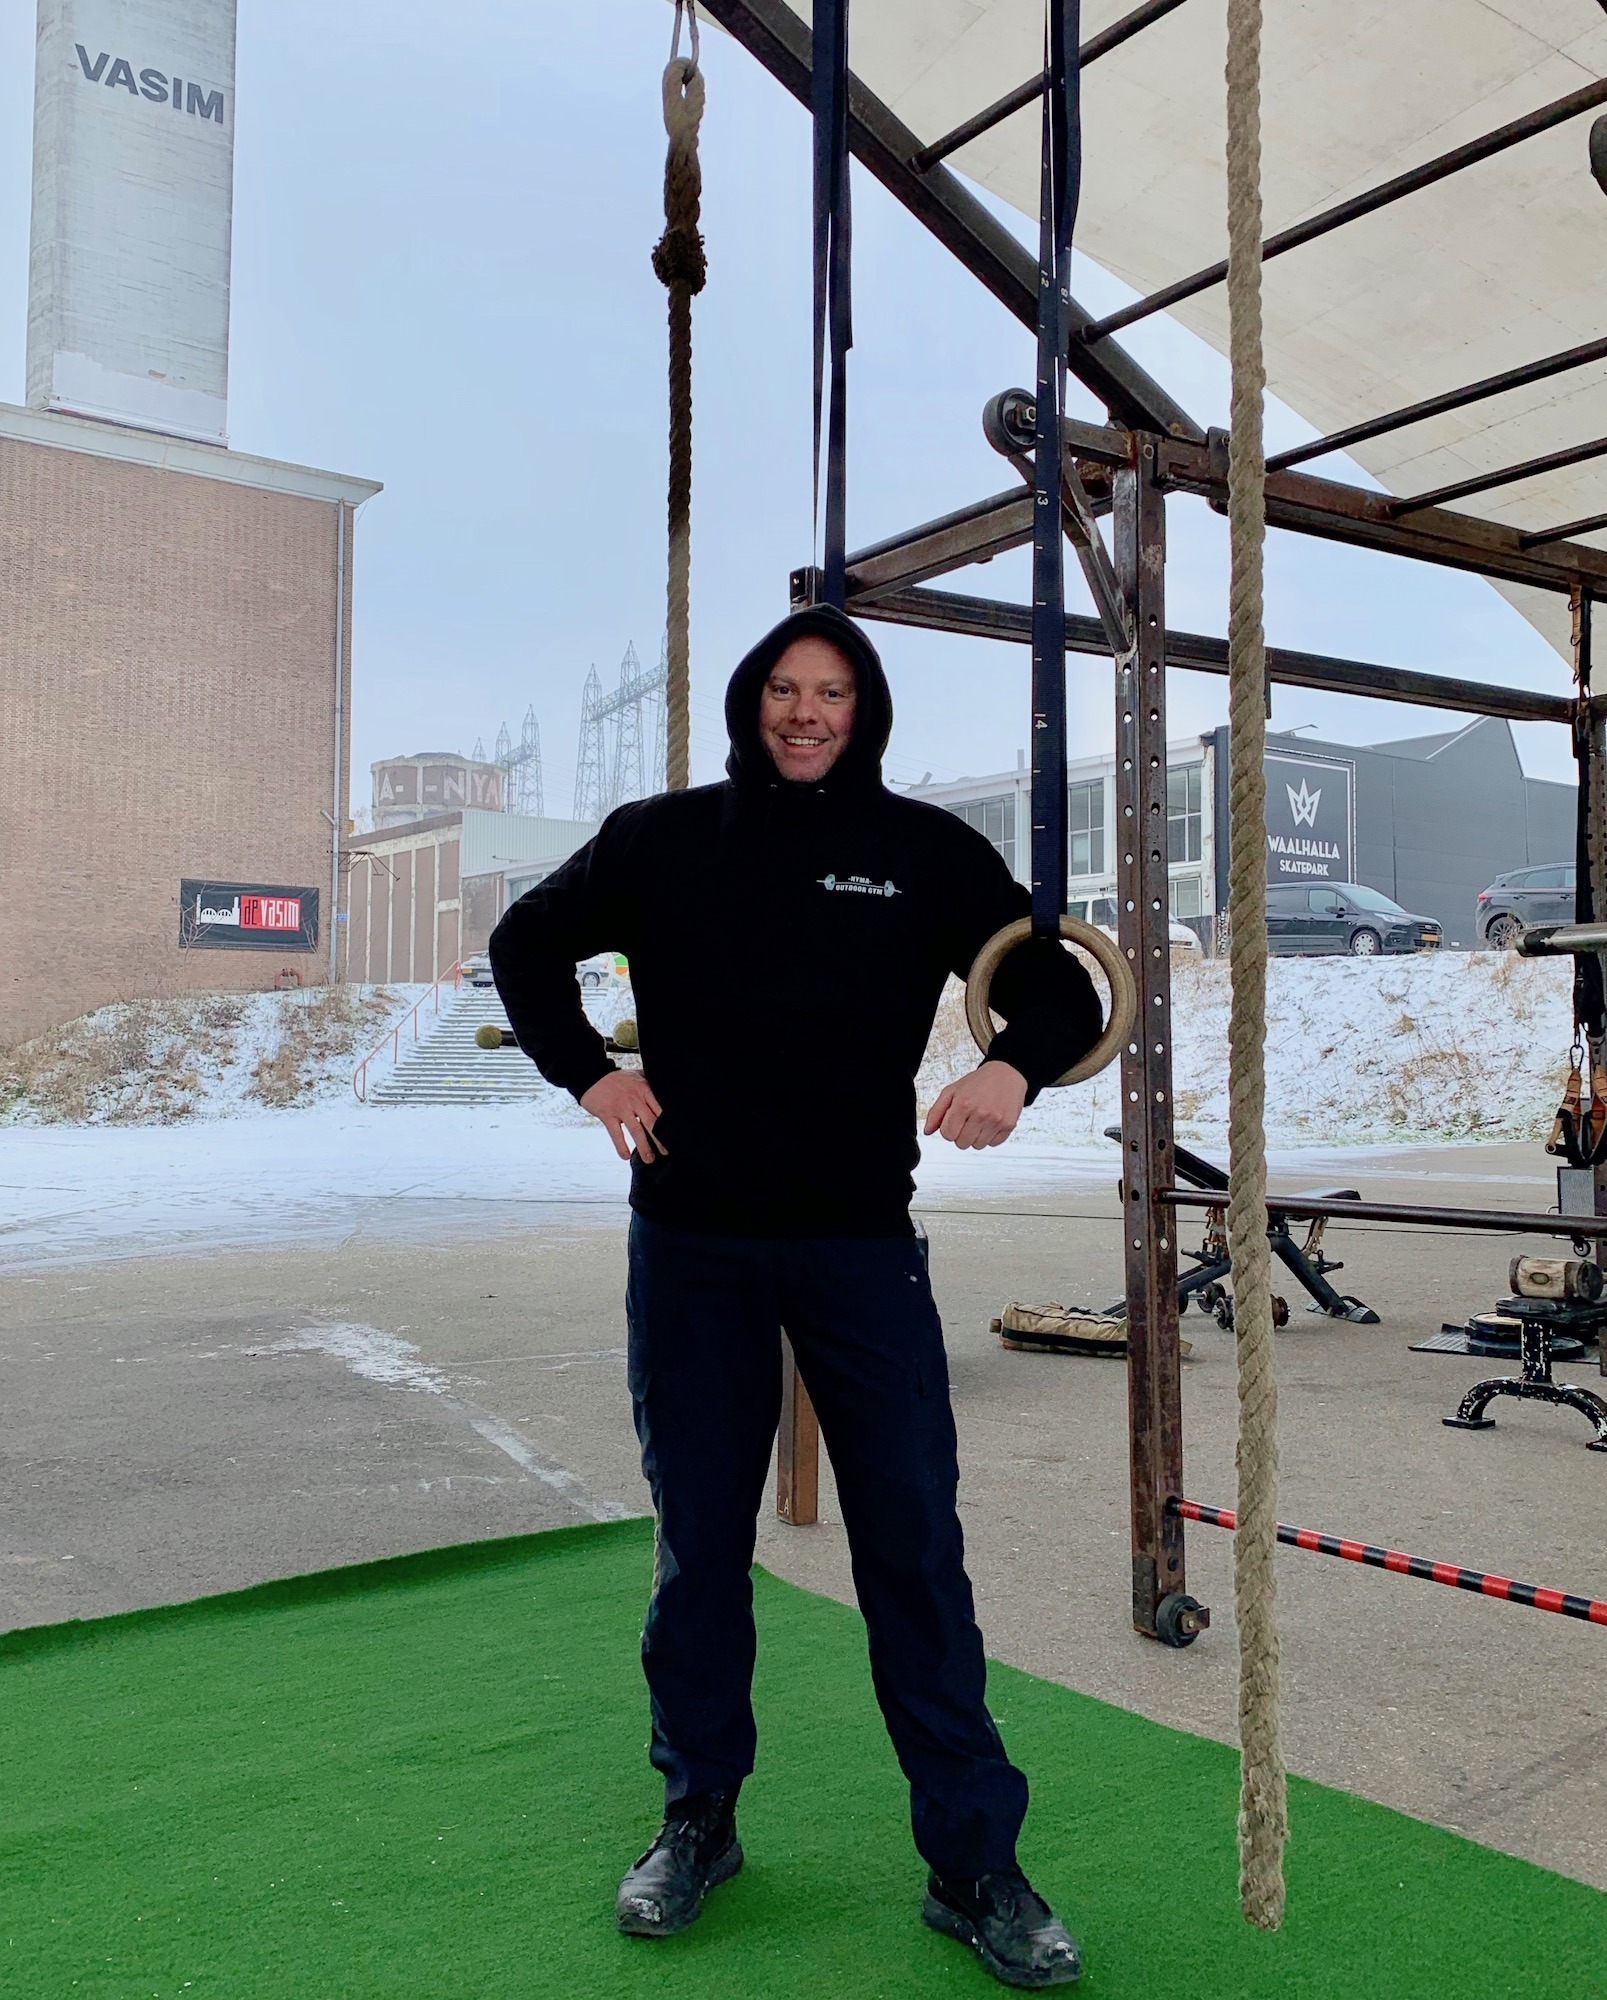 NYMA OUTDOOR GYM 24-01-2019